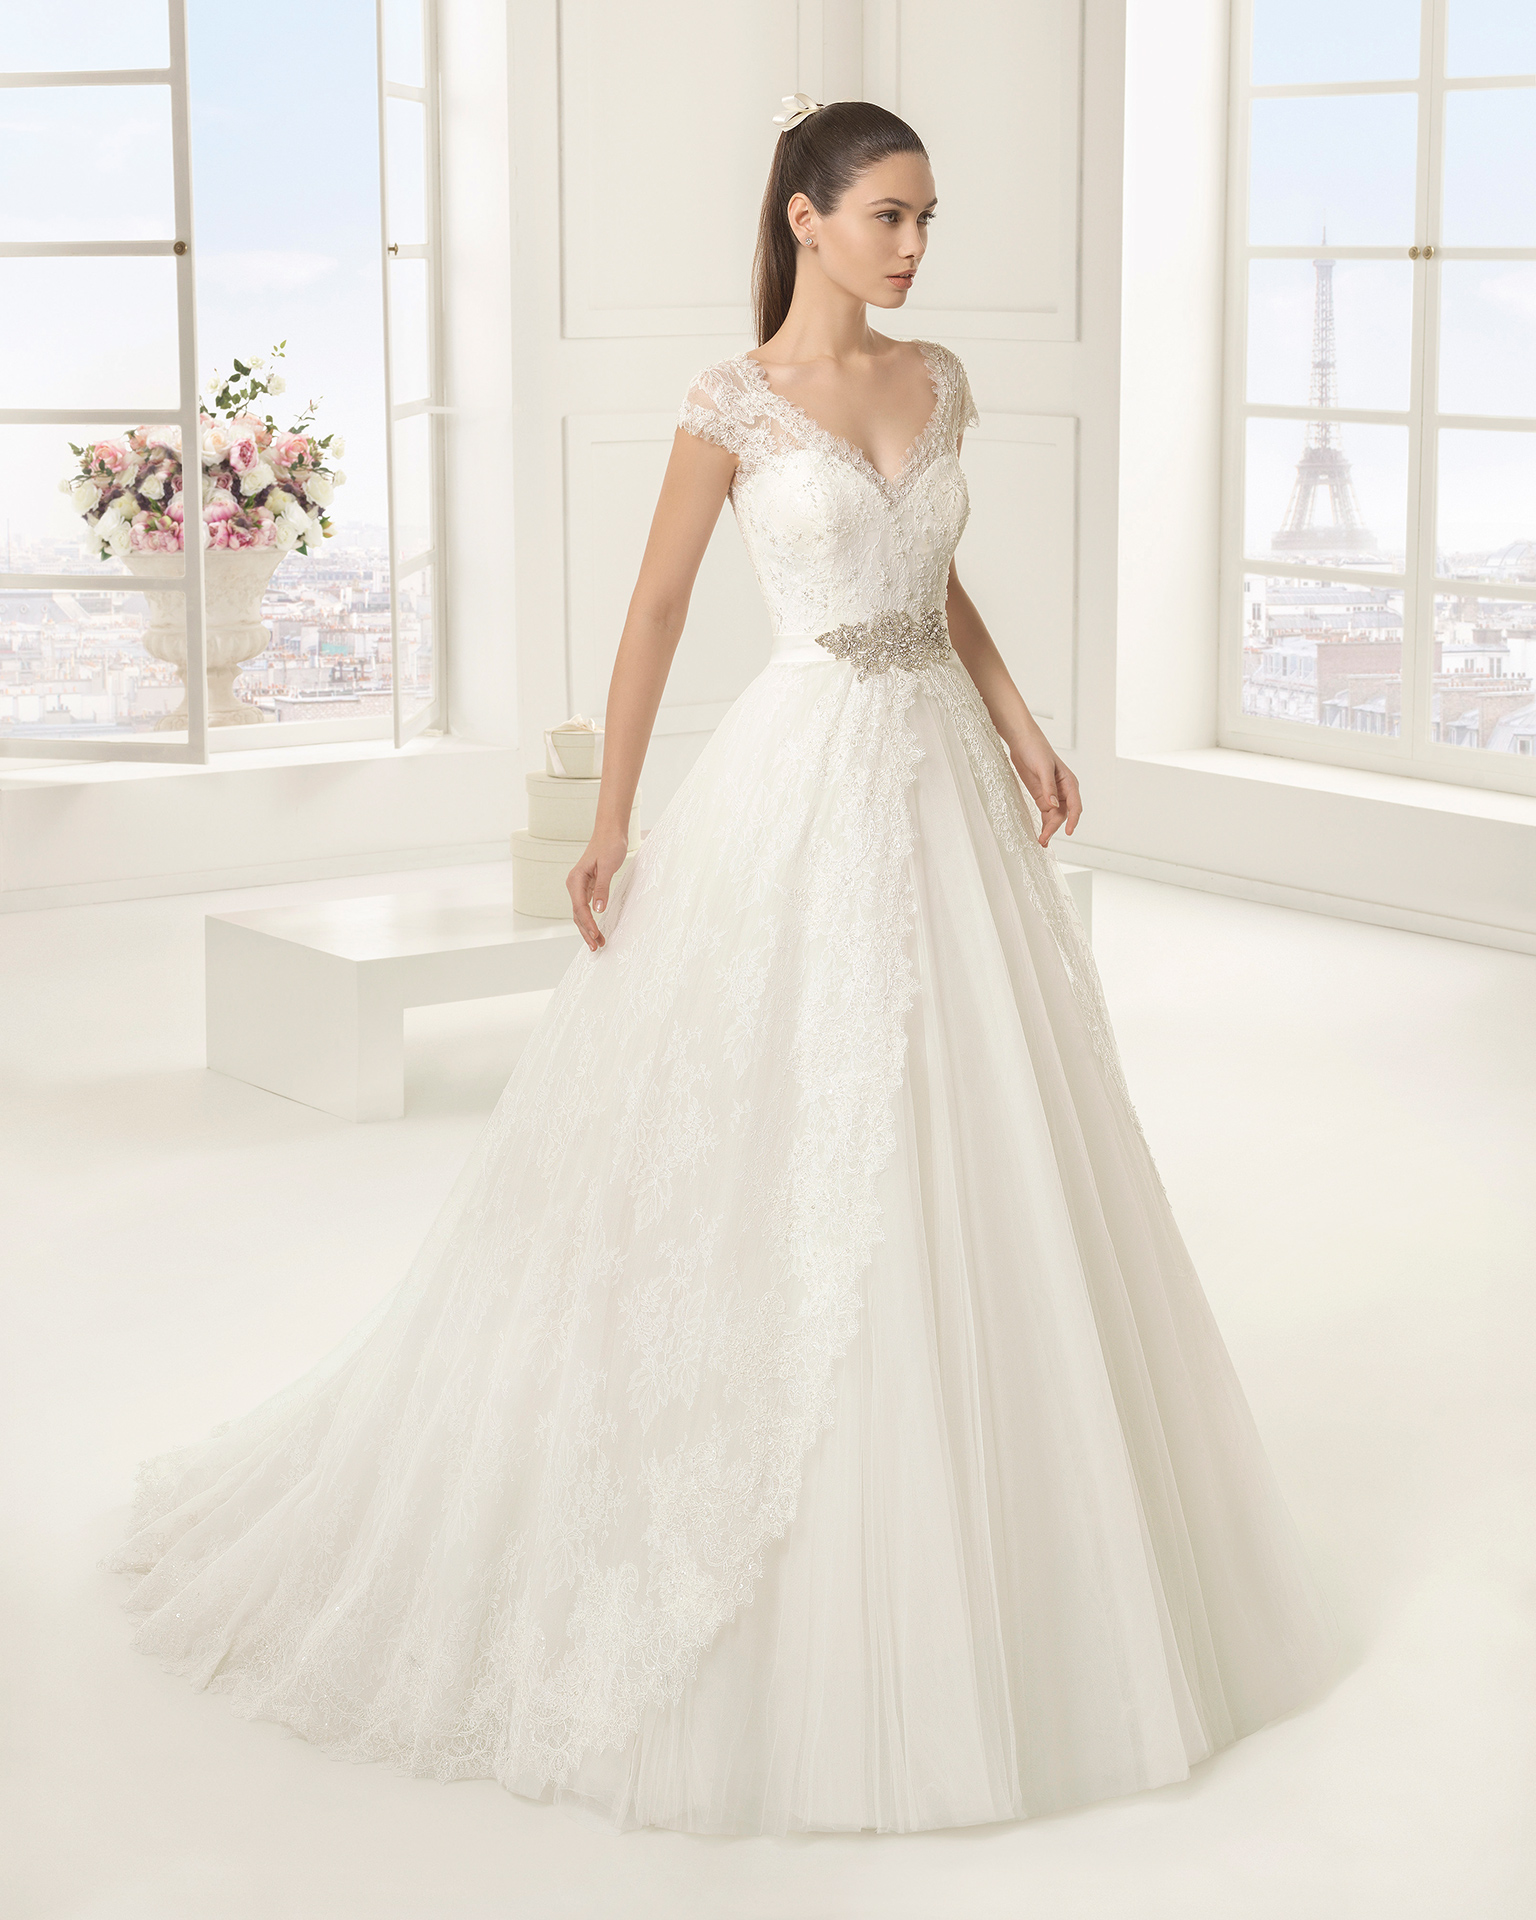 The Best Bridal and Wedding Dresses Shops in Jeddah - Arabia Weddings